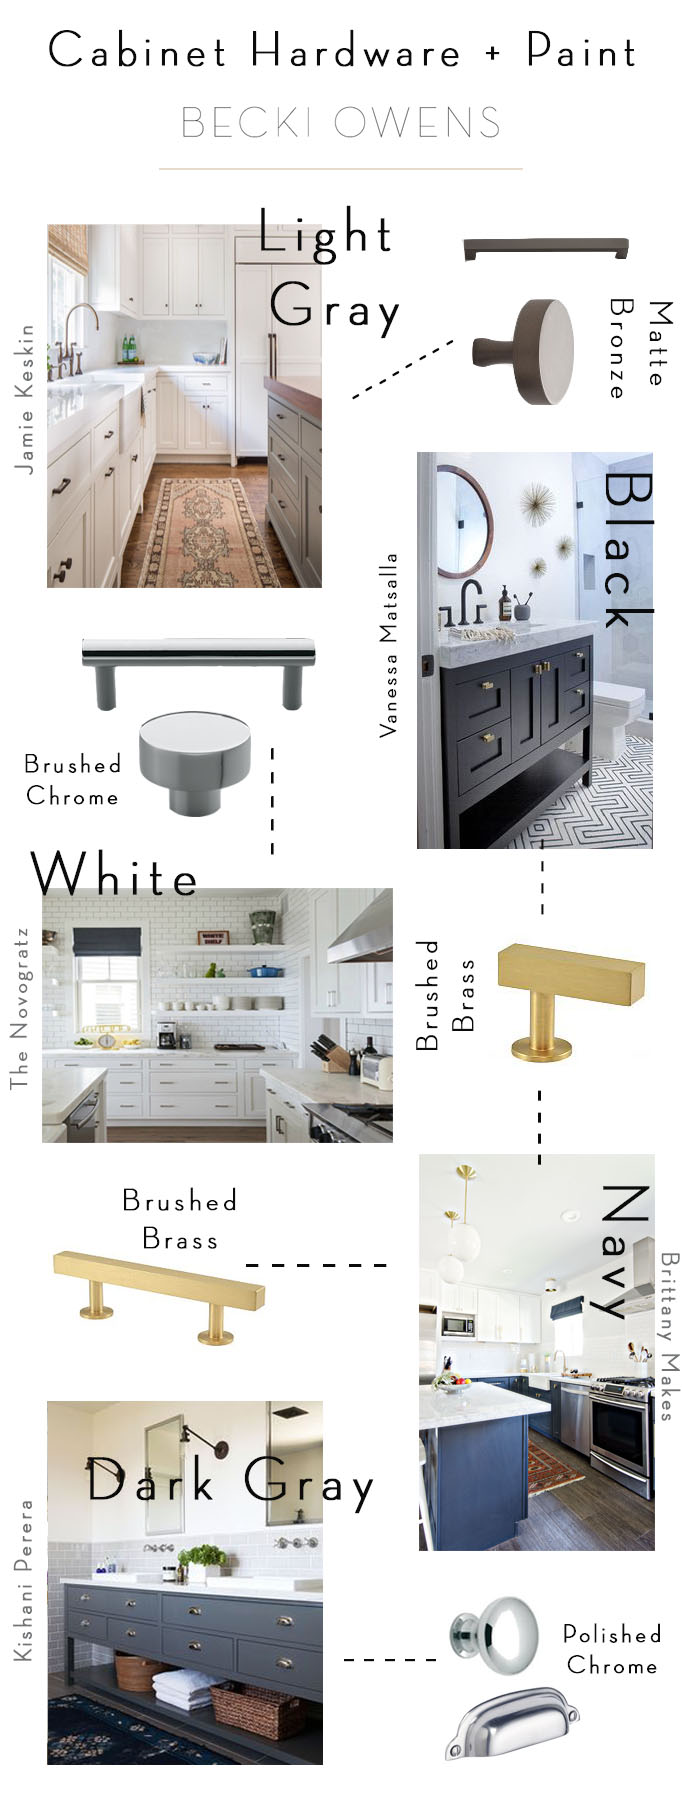 Perfect Pairs: Cabinet Hardware and Paint - Becki Owens